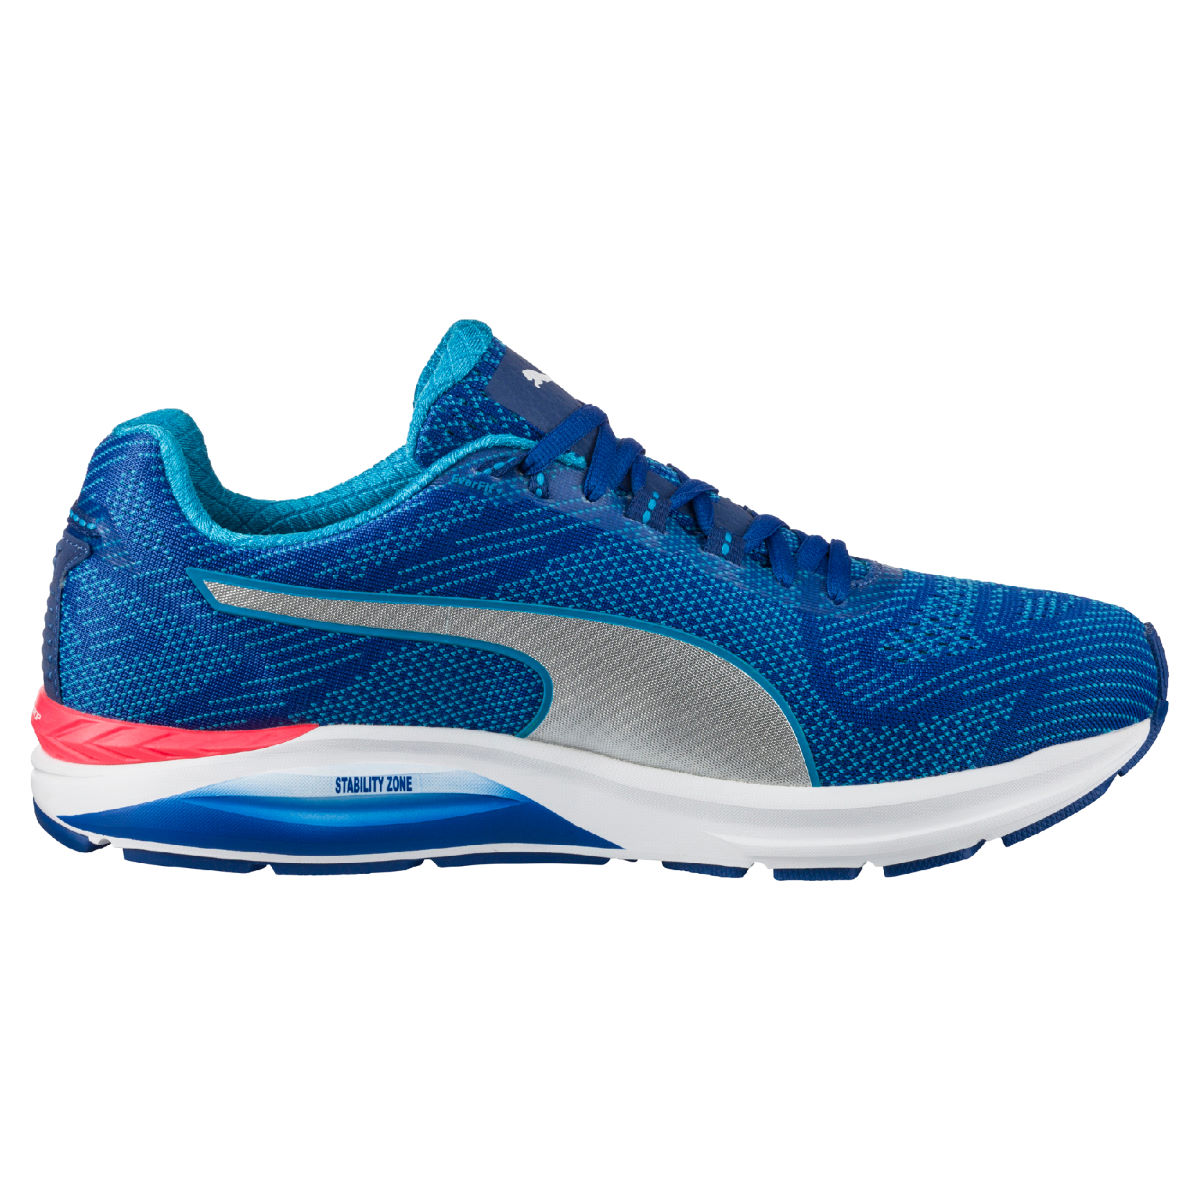 Chaussures Puma Speed 600 S Ignite - 9 UK Bleu/Argenté